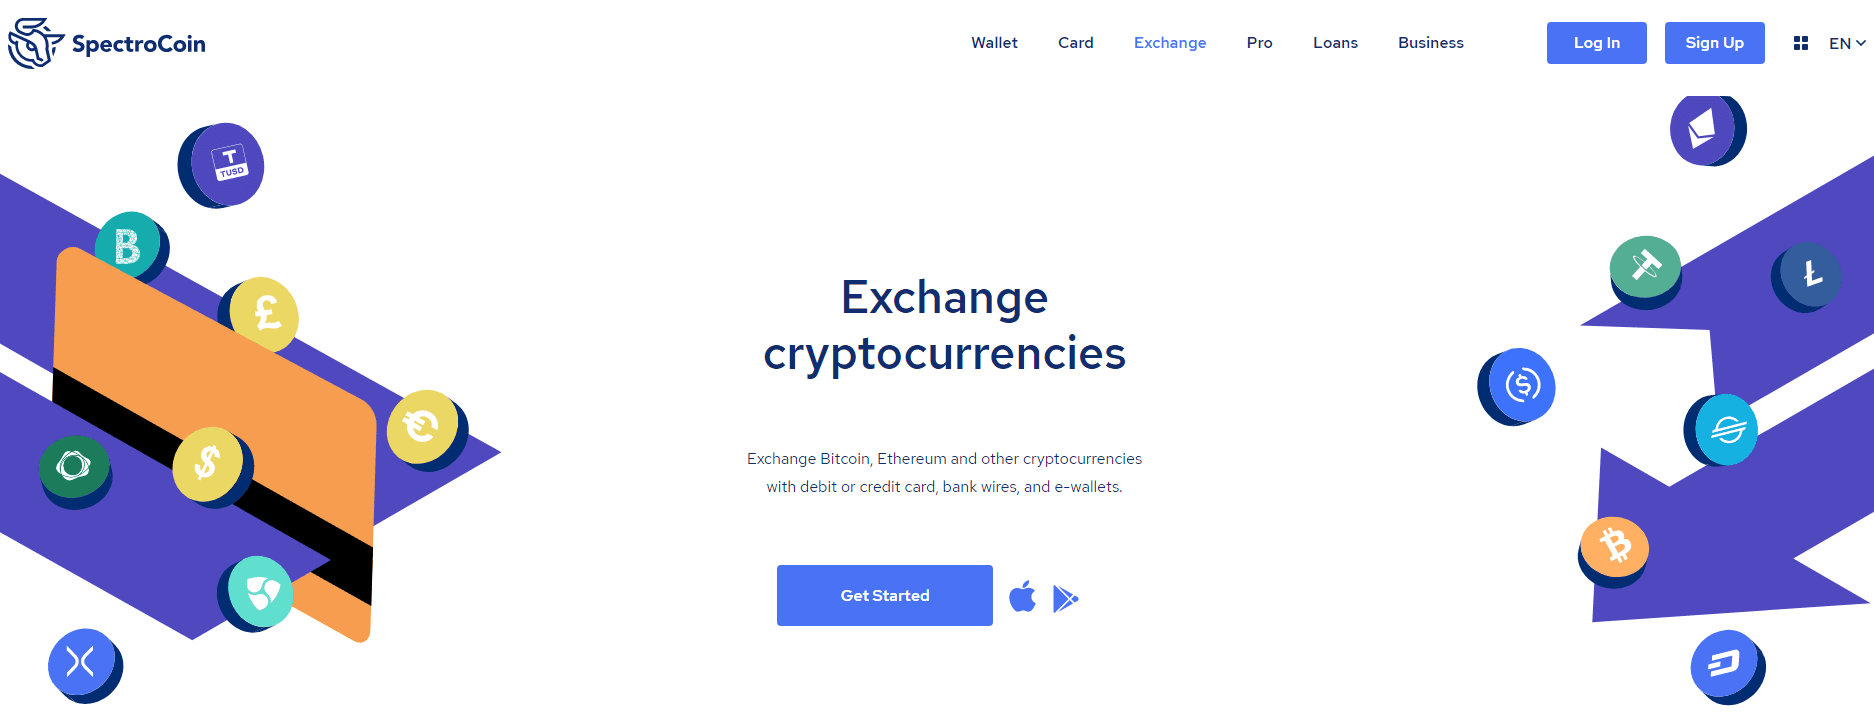 SpectroCoin Reviews - Exchange Service by SpectroCoin